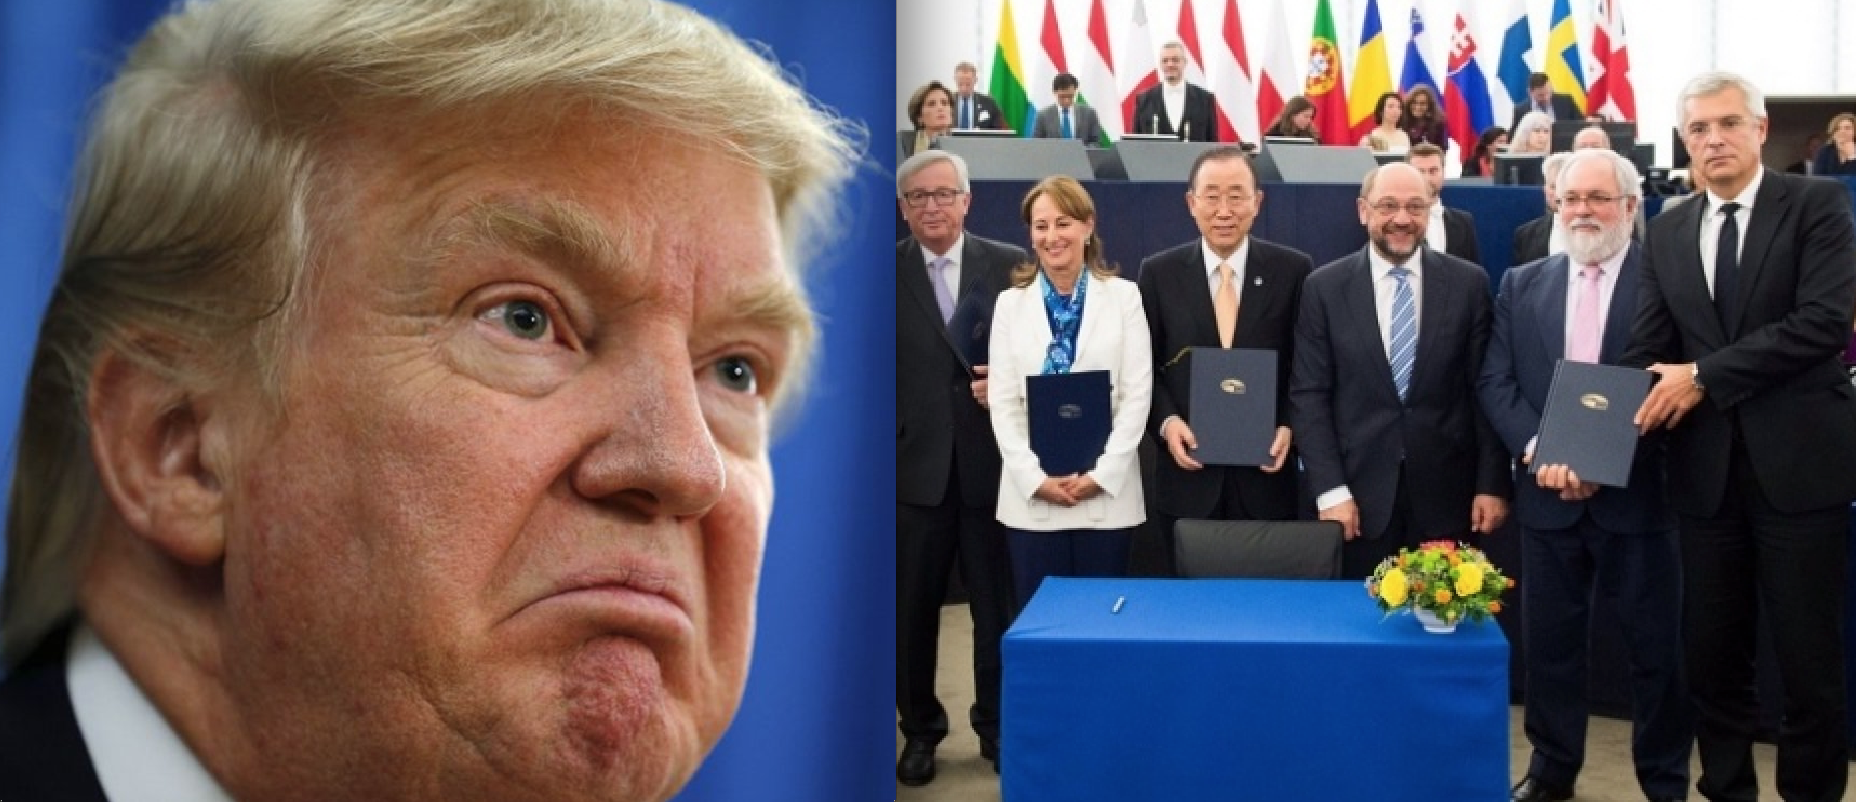 EU Leaders Put Foot Down over Climate, Telling Trump: 'No Paris Agreement, no trade agreement'